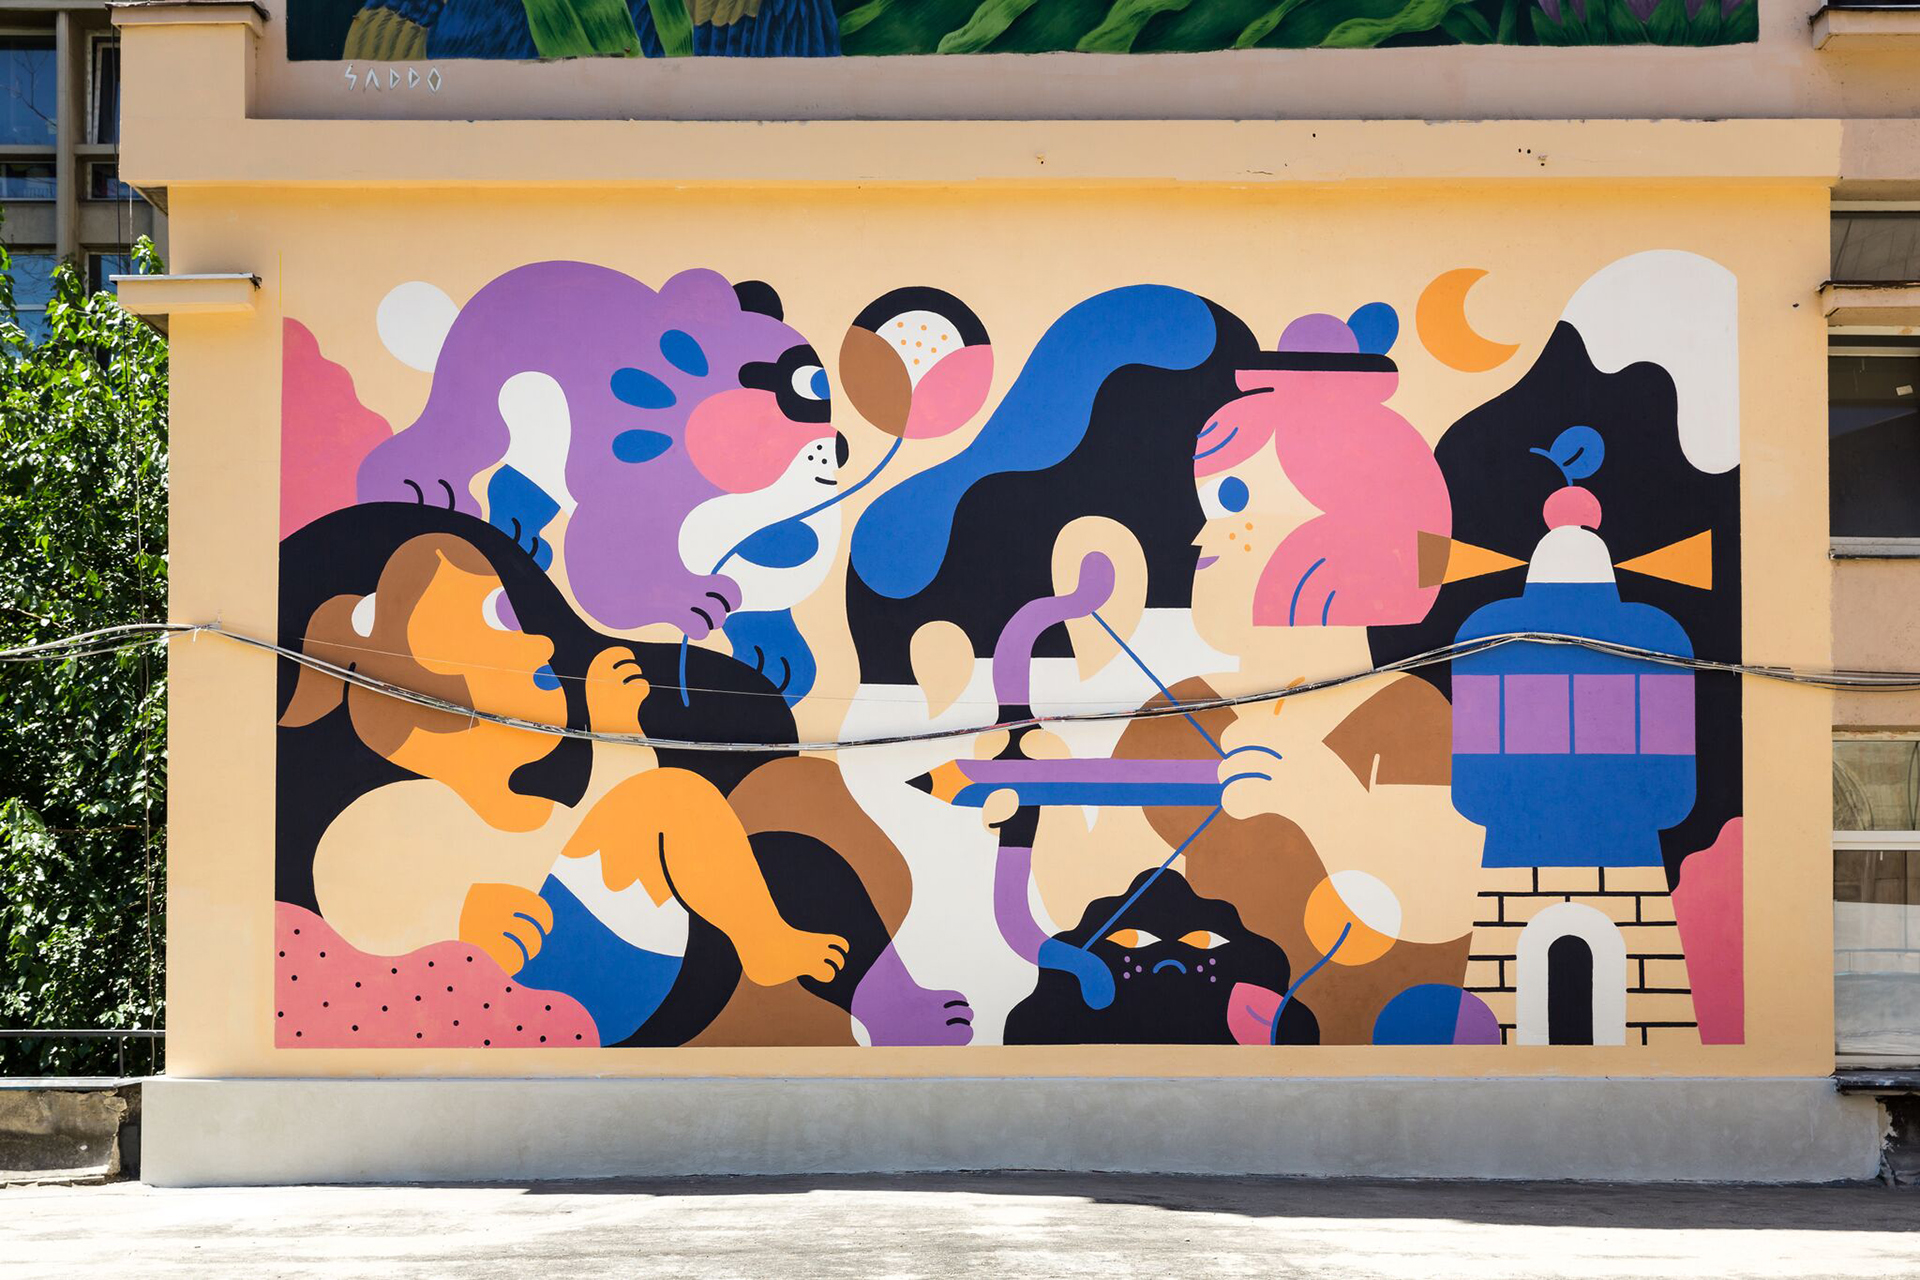 Illustrator Hedof's mural for Visual Playground design festival